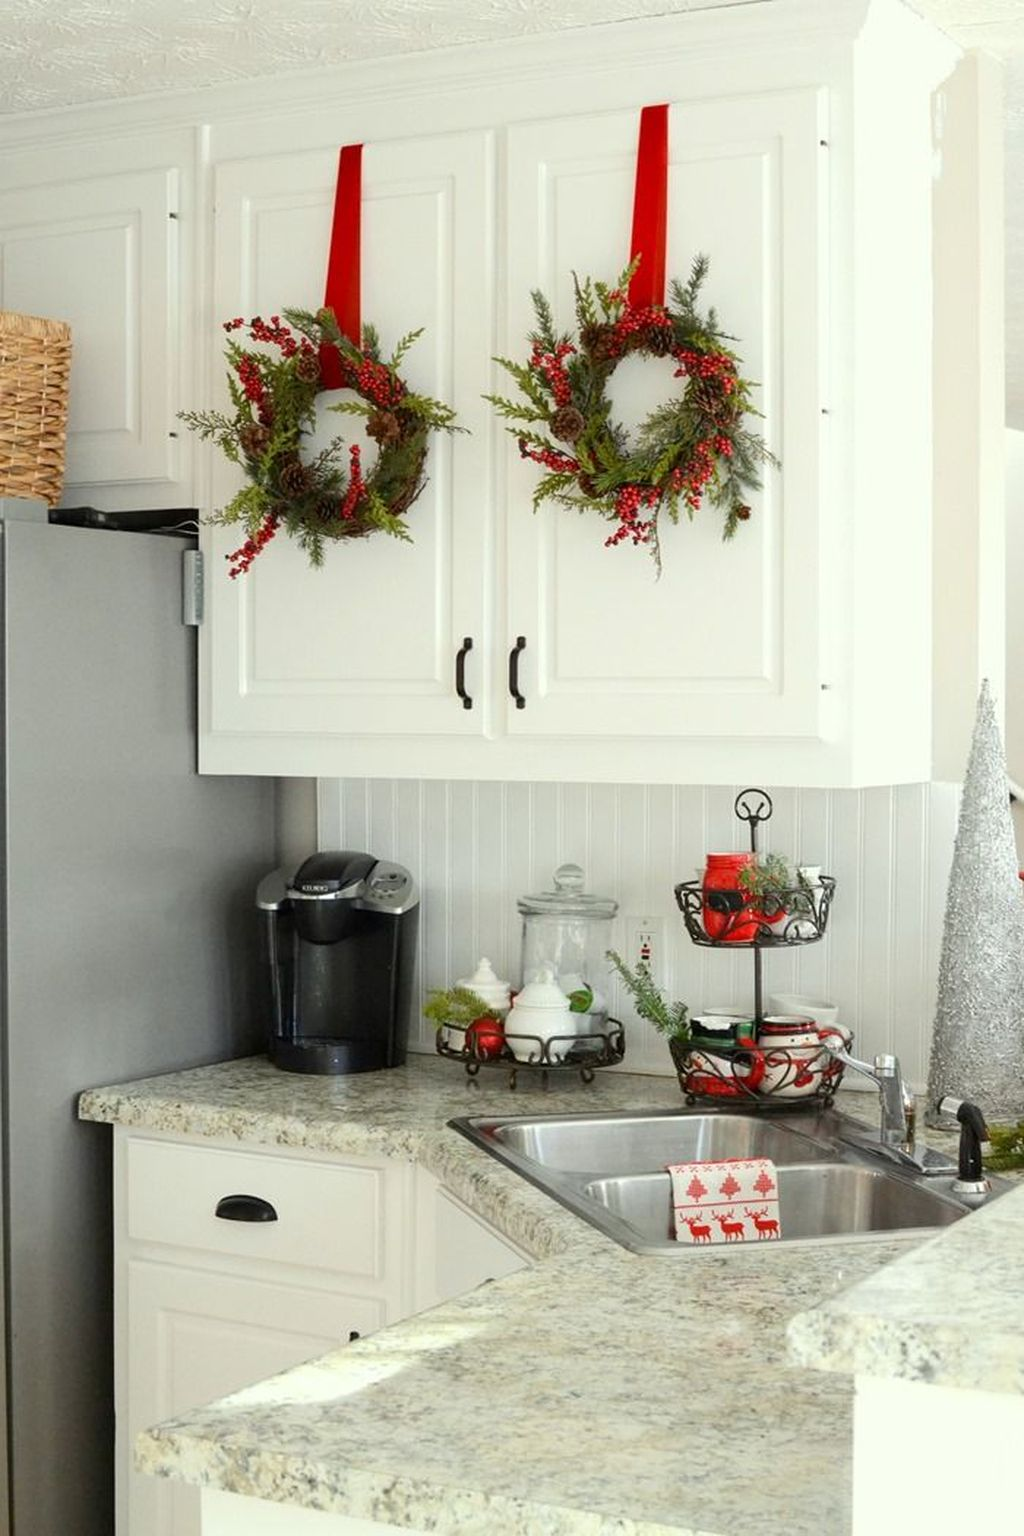 Inspiring Winter Kitchen Decor Ideas You Can Try 32